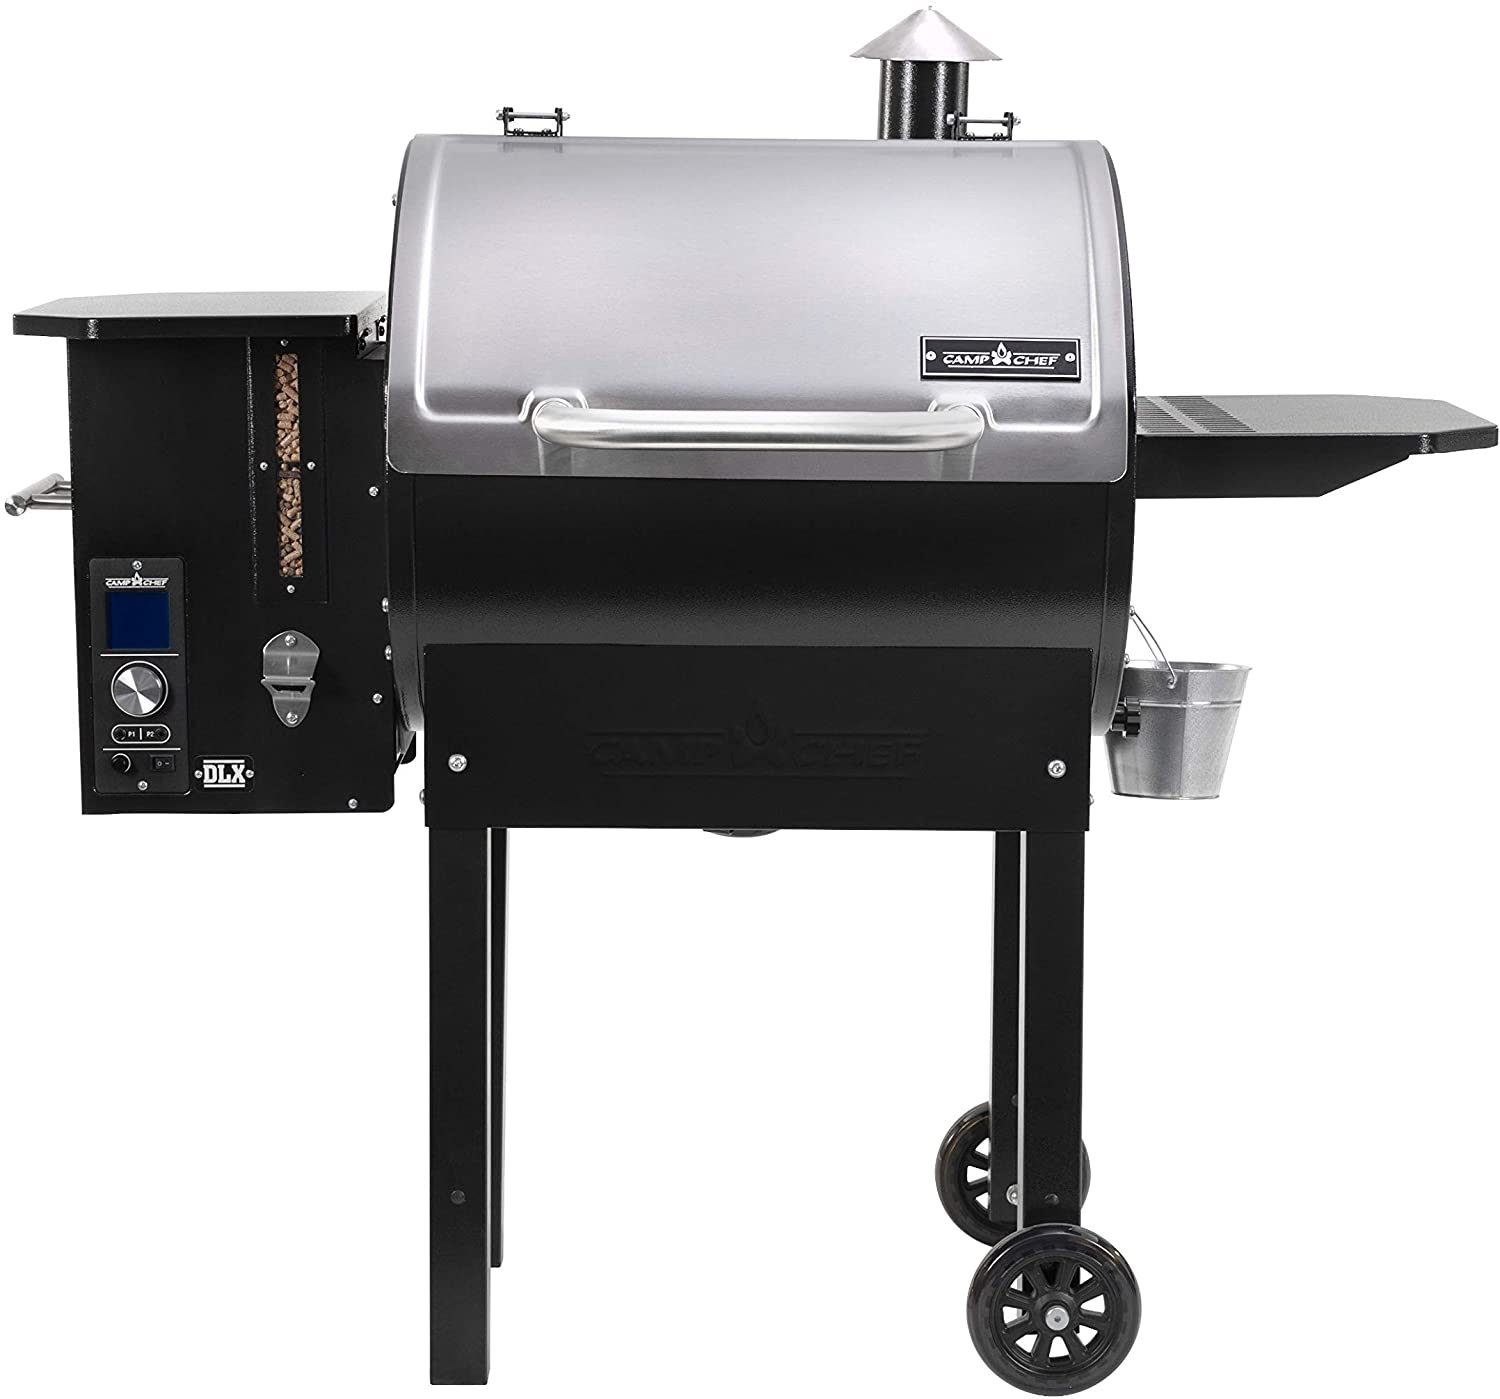 Camp Chef SmokePro Stainless DLX Grill review